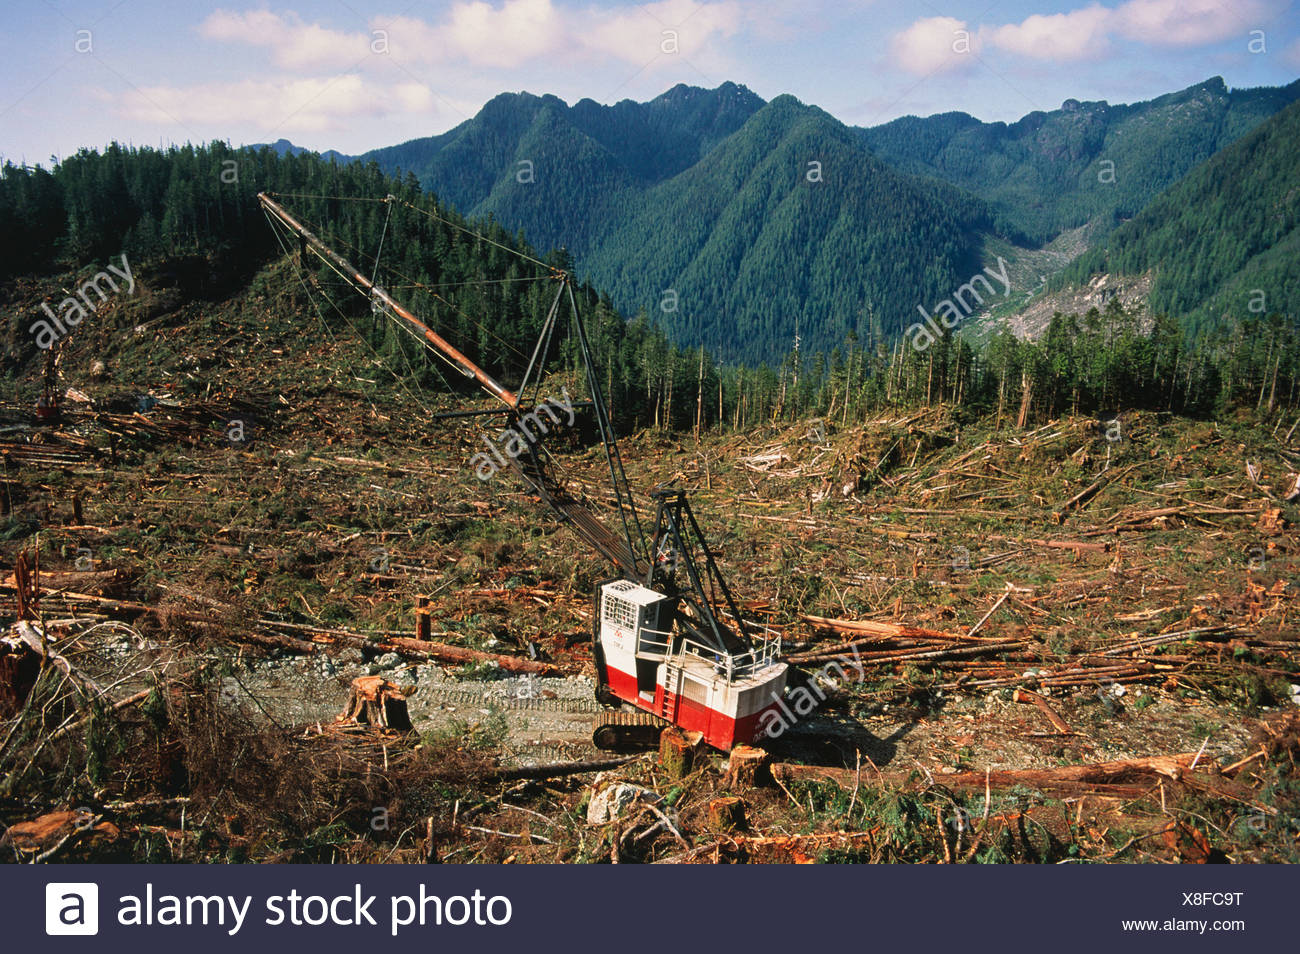 Deforestation of Temperate Rainforest - Stock Image